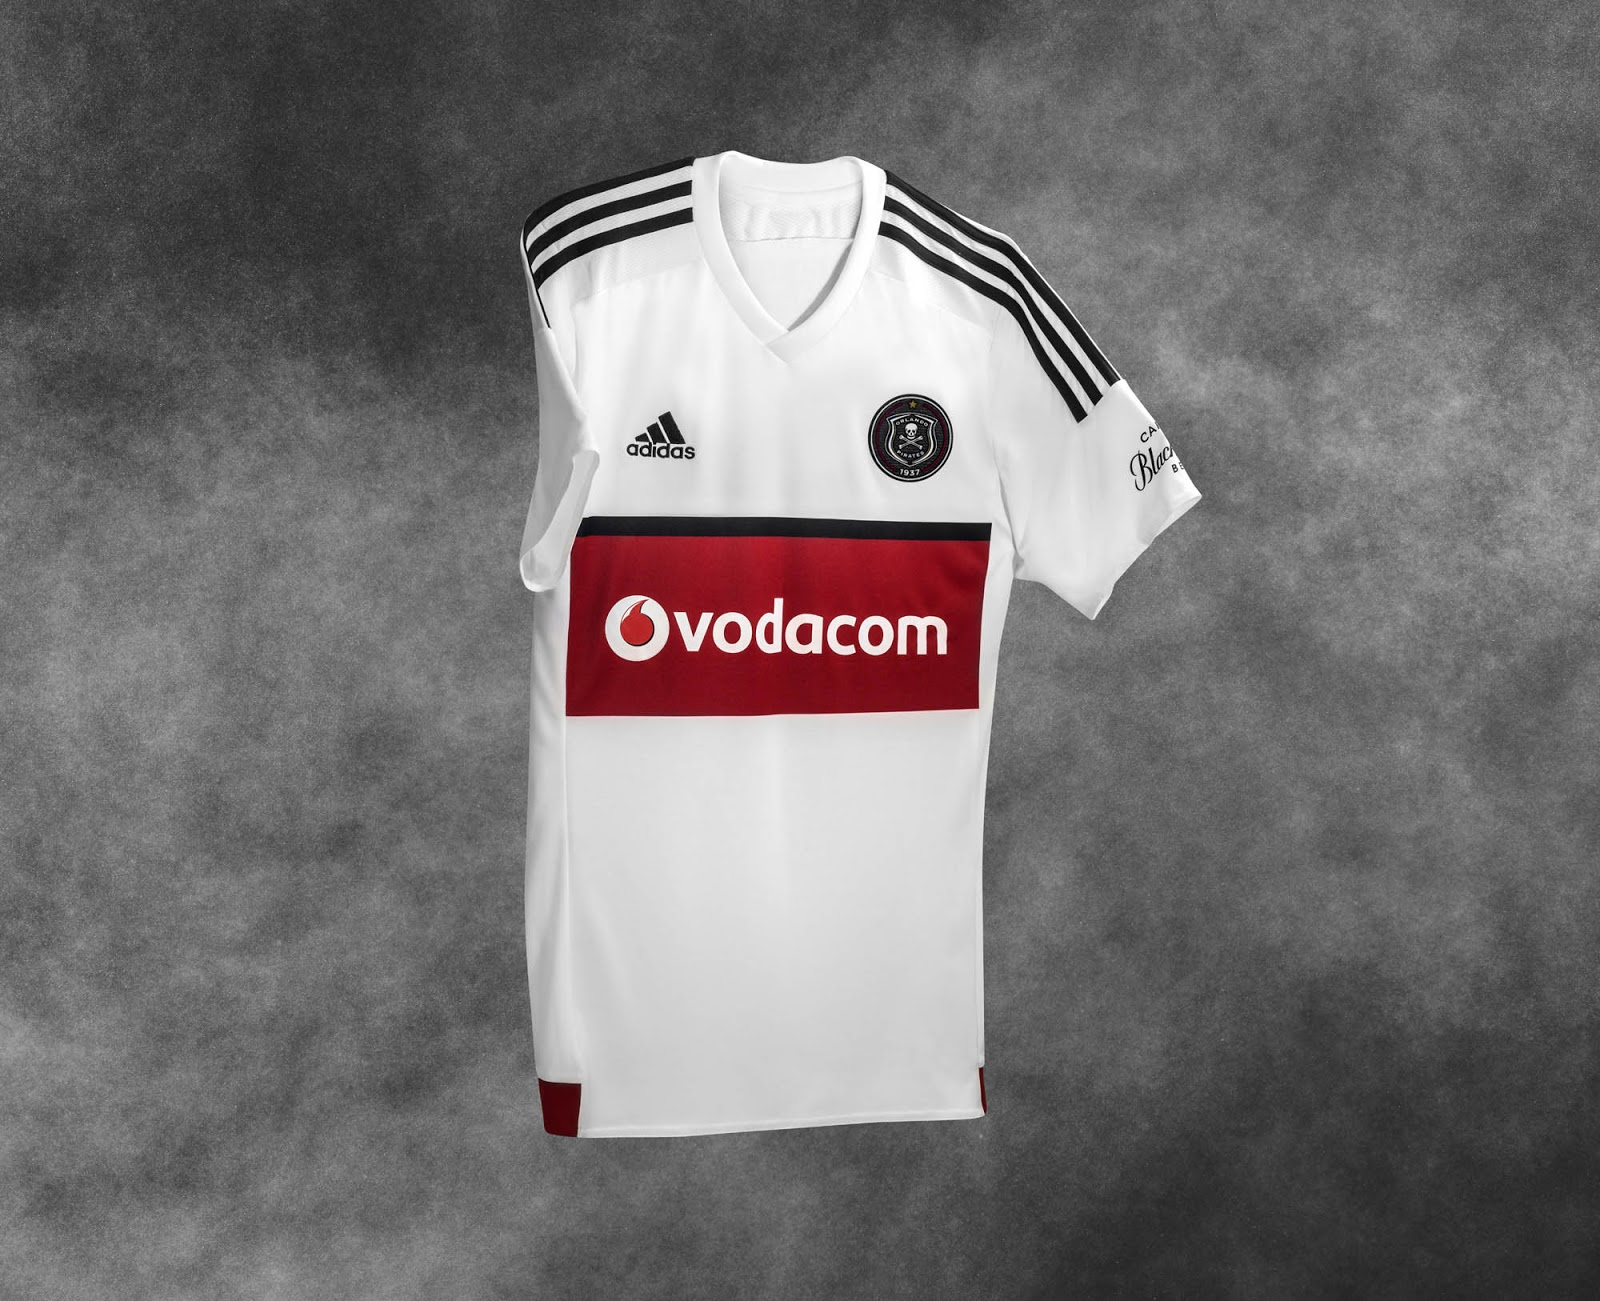 orlando pirates new jersey 2016/17 pictures